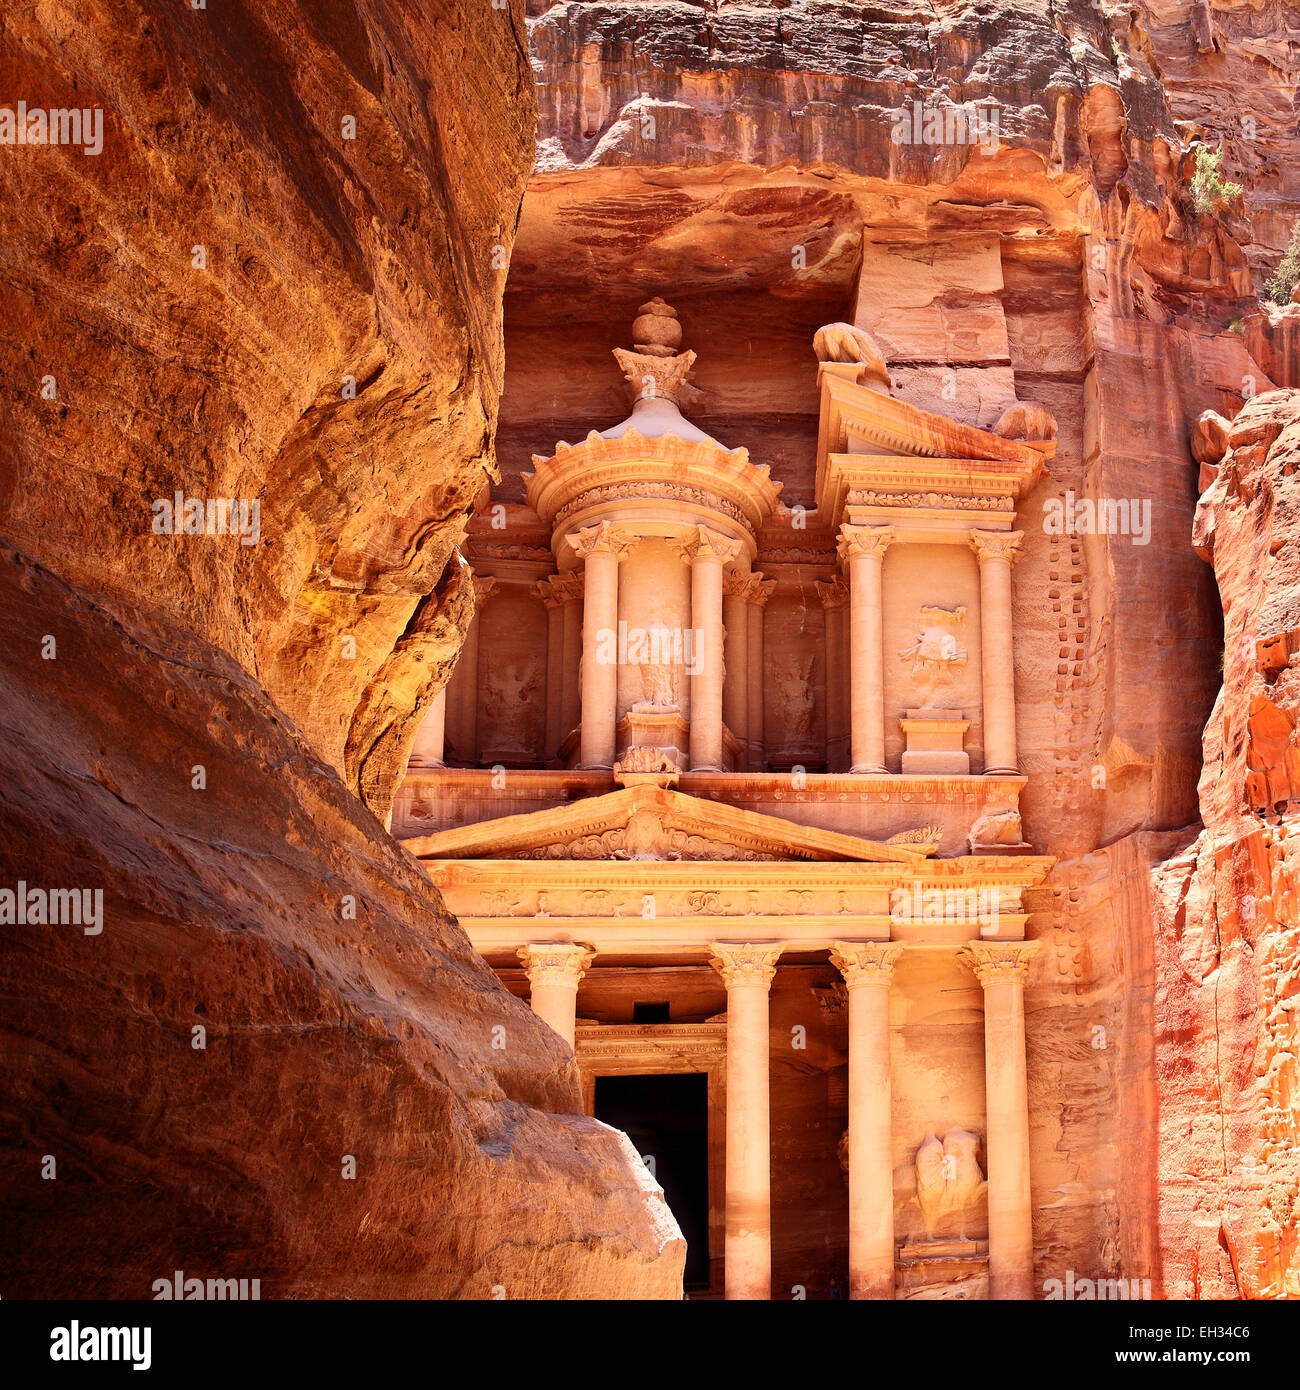 Treasury in Petra (Al Khazneh), Jordan - Stock Image